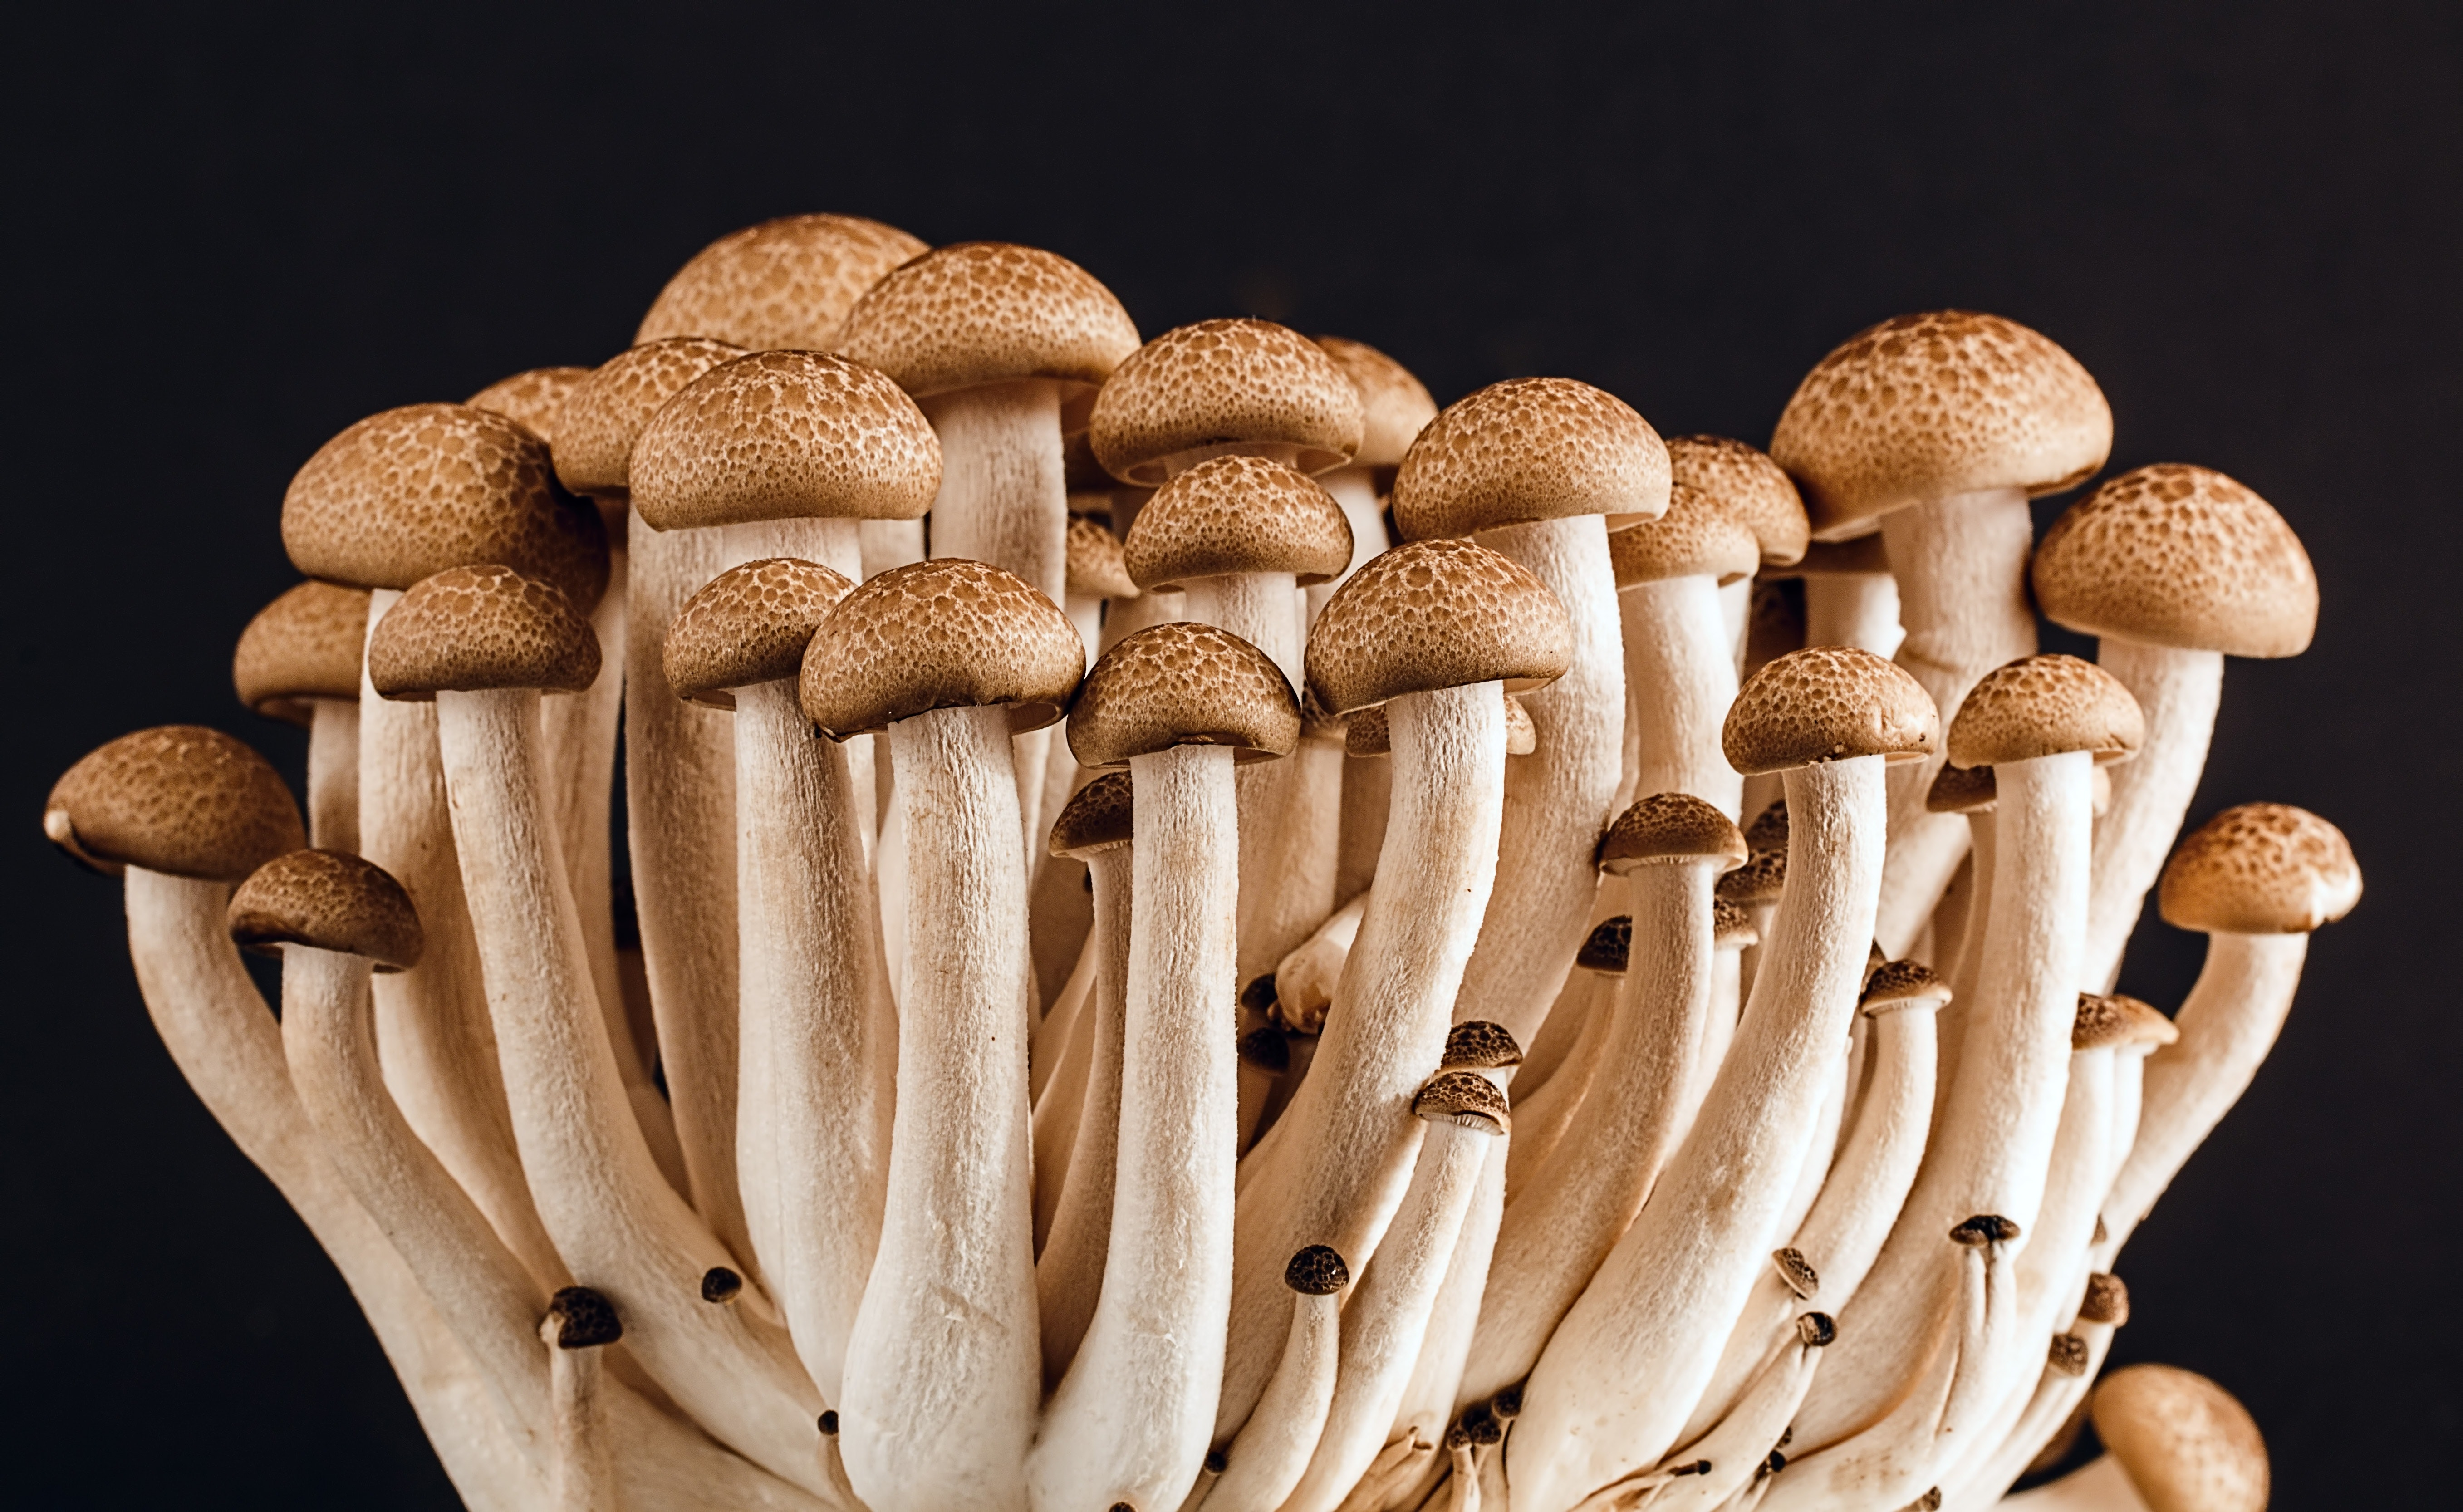 Mushrooms are a fascinating and rewarding thing to grow at home